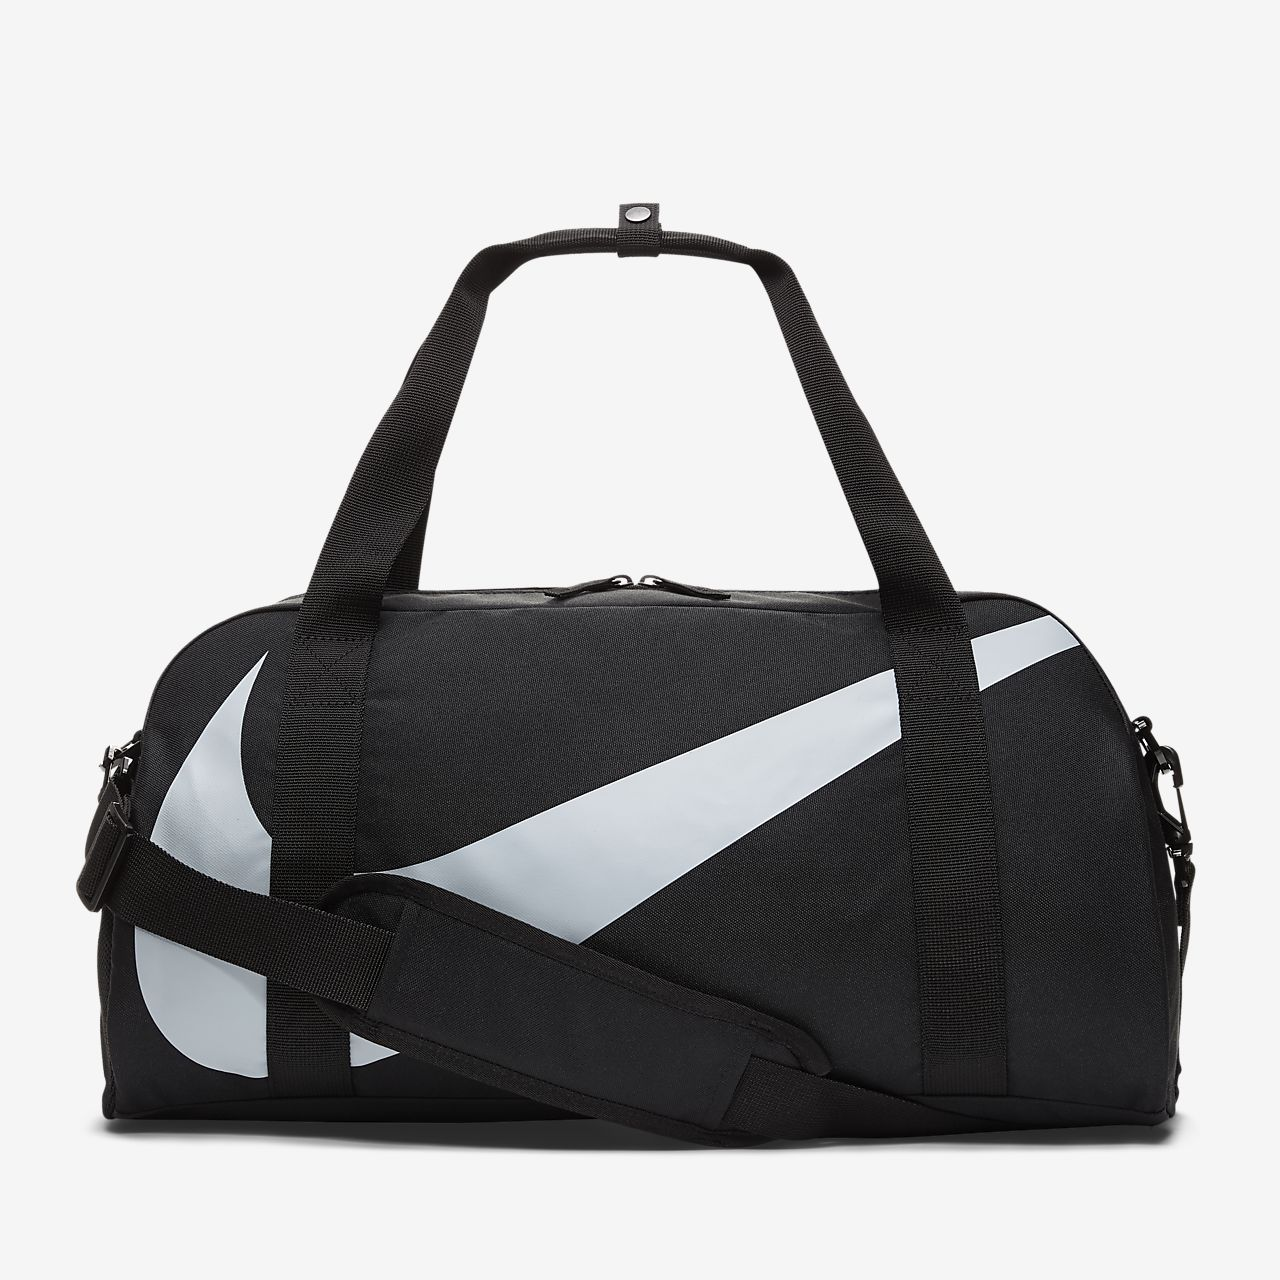 071d09225b Nike Gym Club Kids  Duffel Bag. Nike.com GB